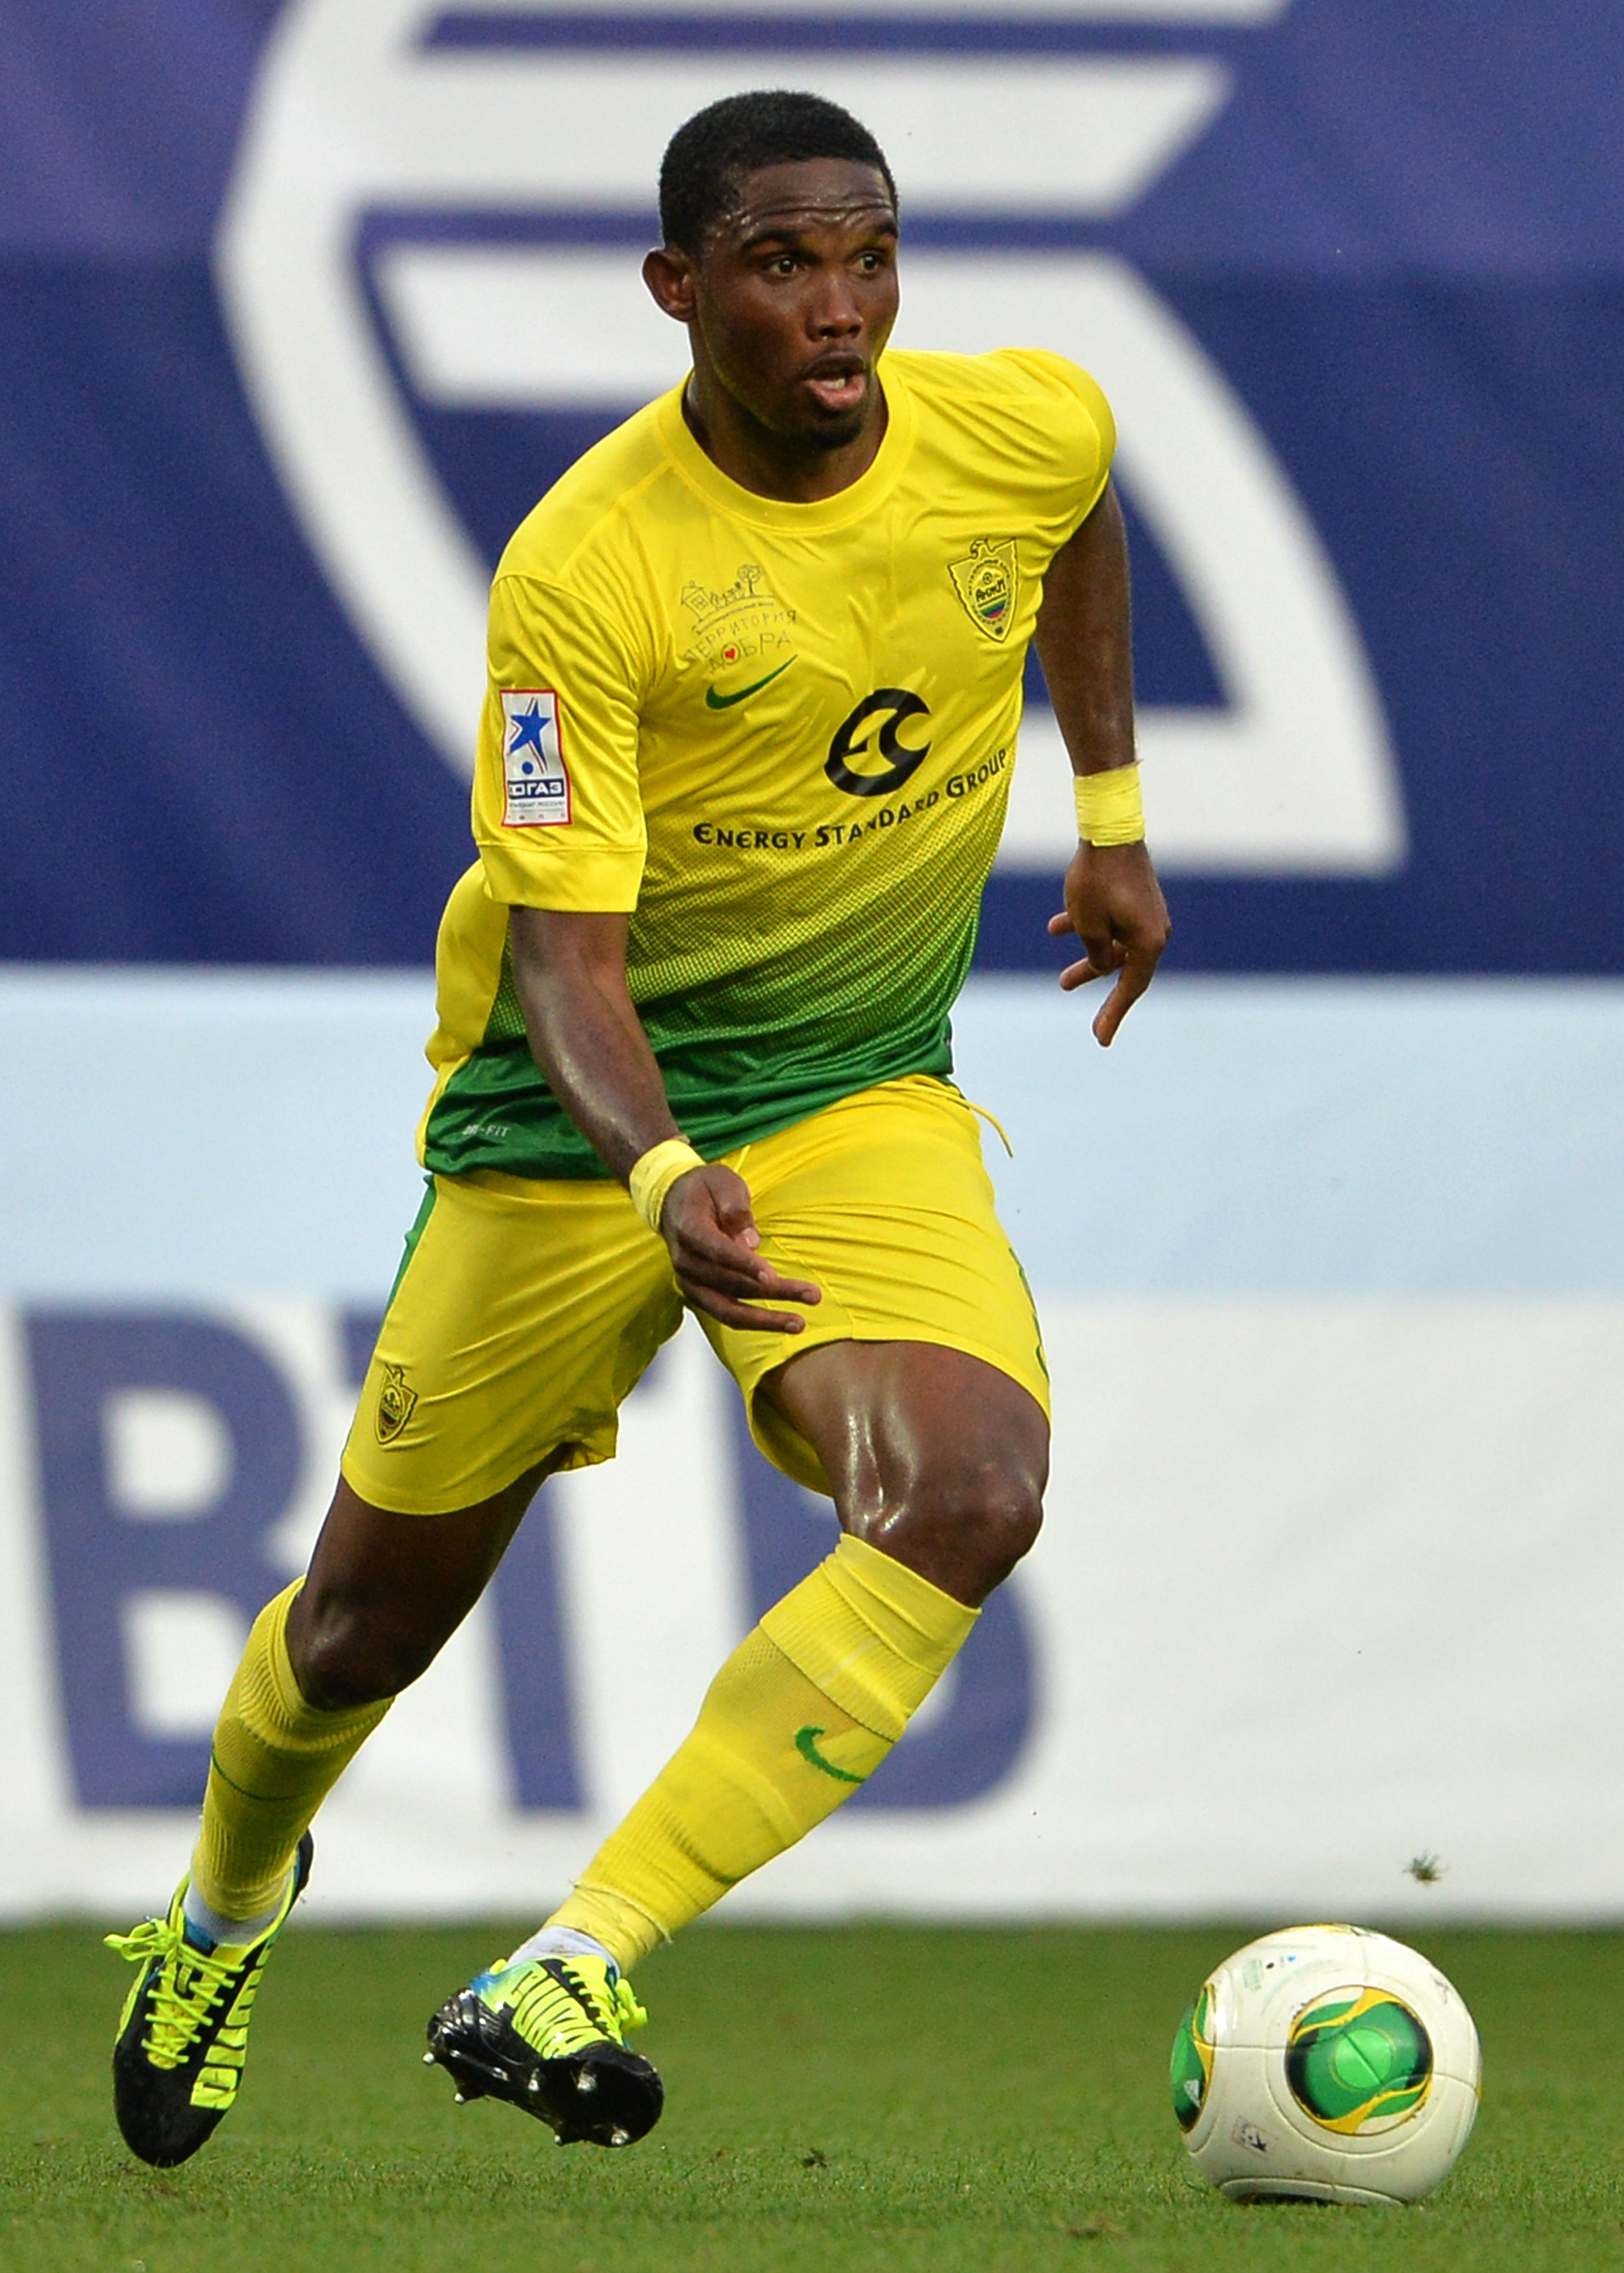 f29558b6675 ... Jersey features Samuel Etoo - one of the most talented footballers from  Africa - Cameroon Cameroon 2014 World Cup ...